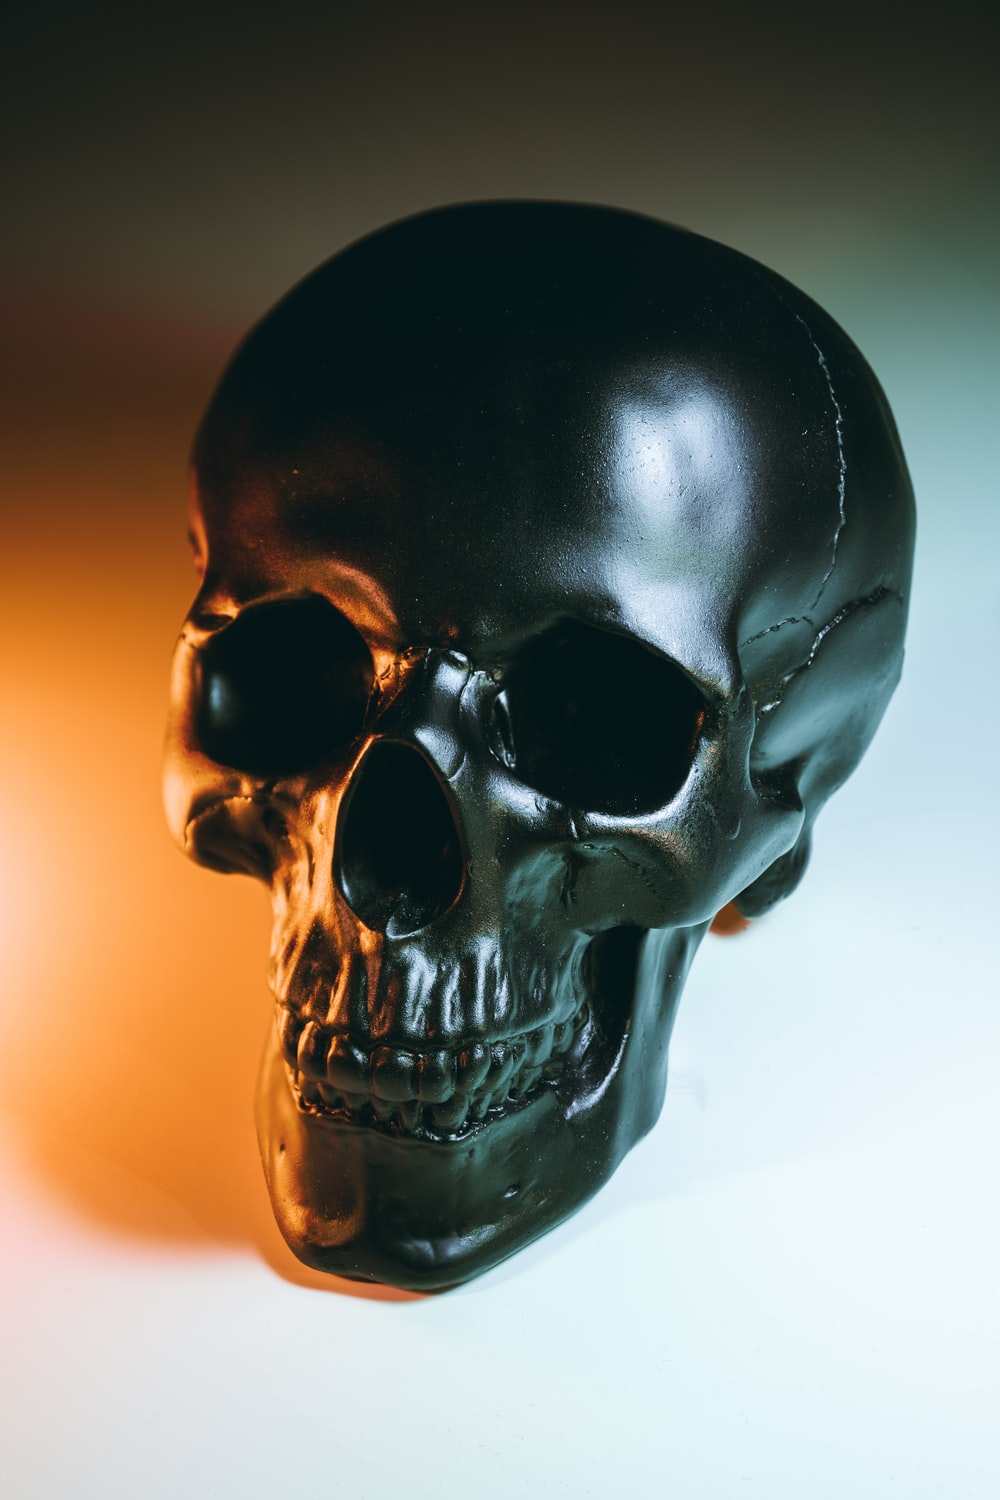 750 Human Skull Pictures Hd Download Free Images On Unsplash